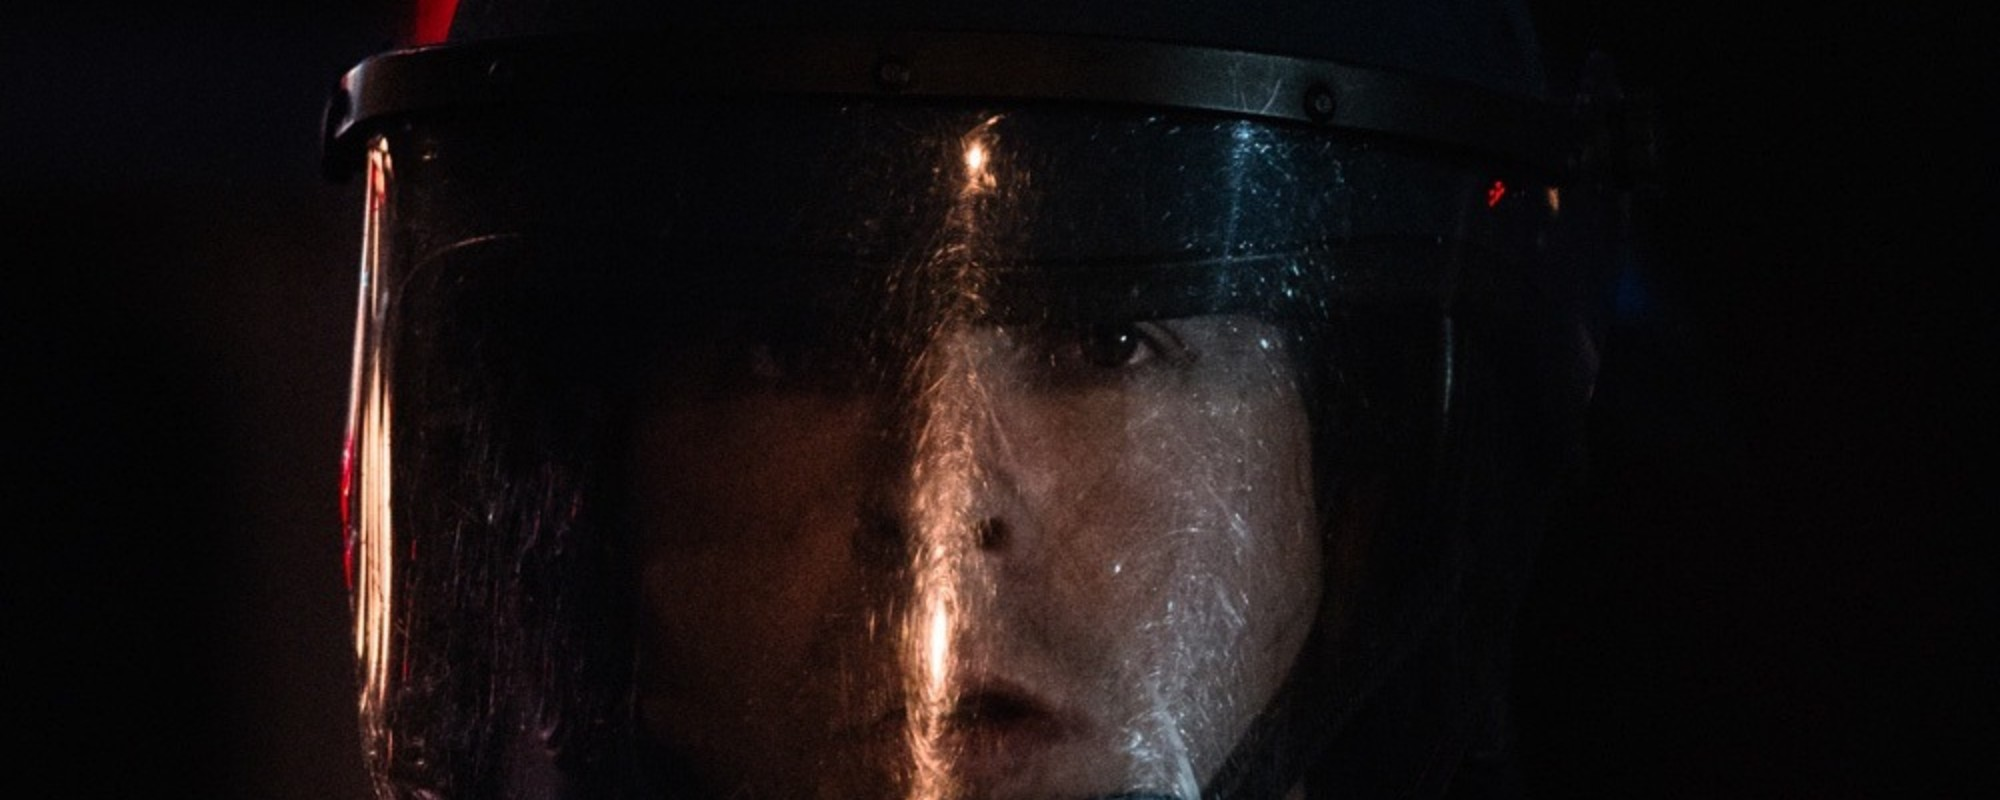 Portraits of Baltimore Cops in Riot Gear Just Before the City Went Over the Edge